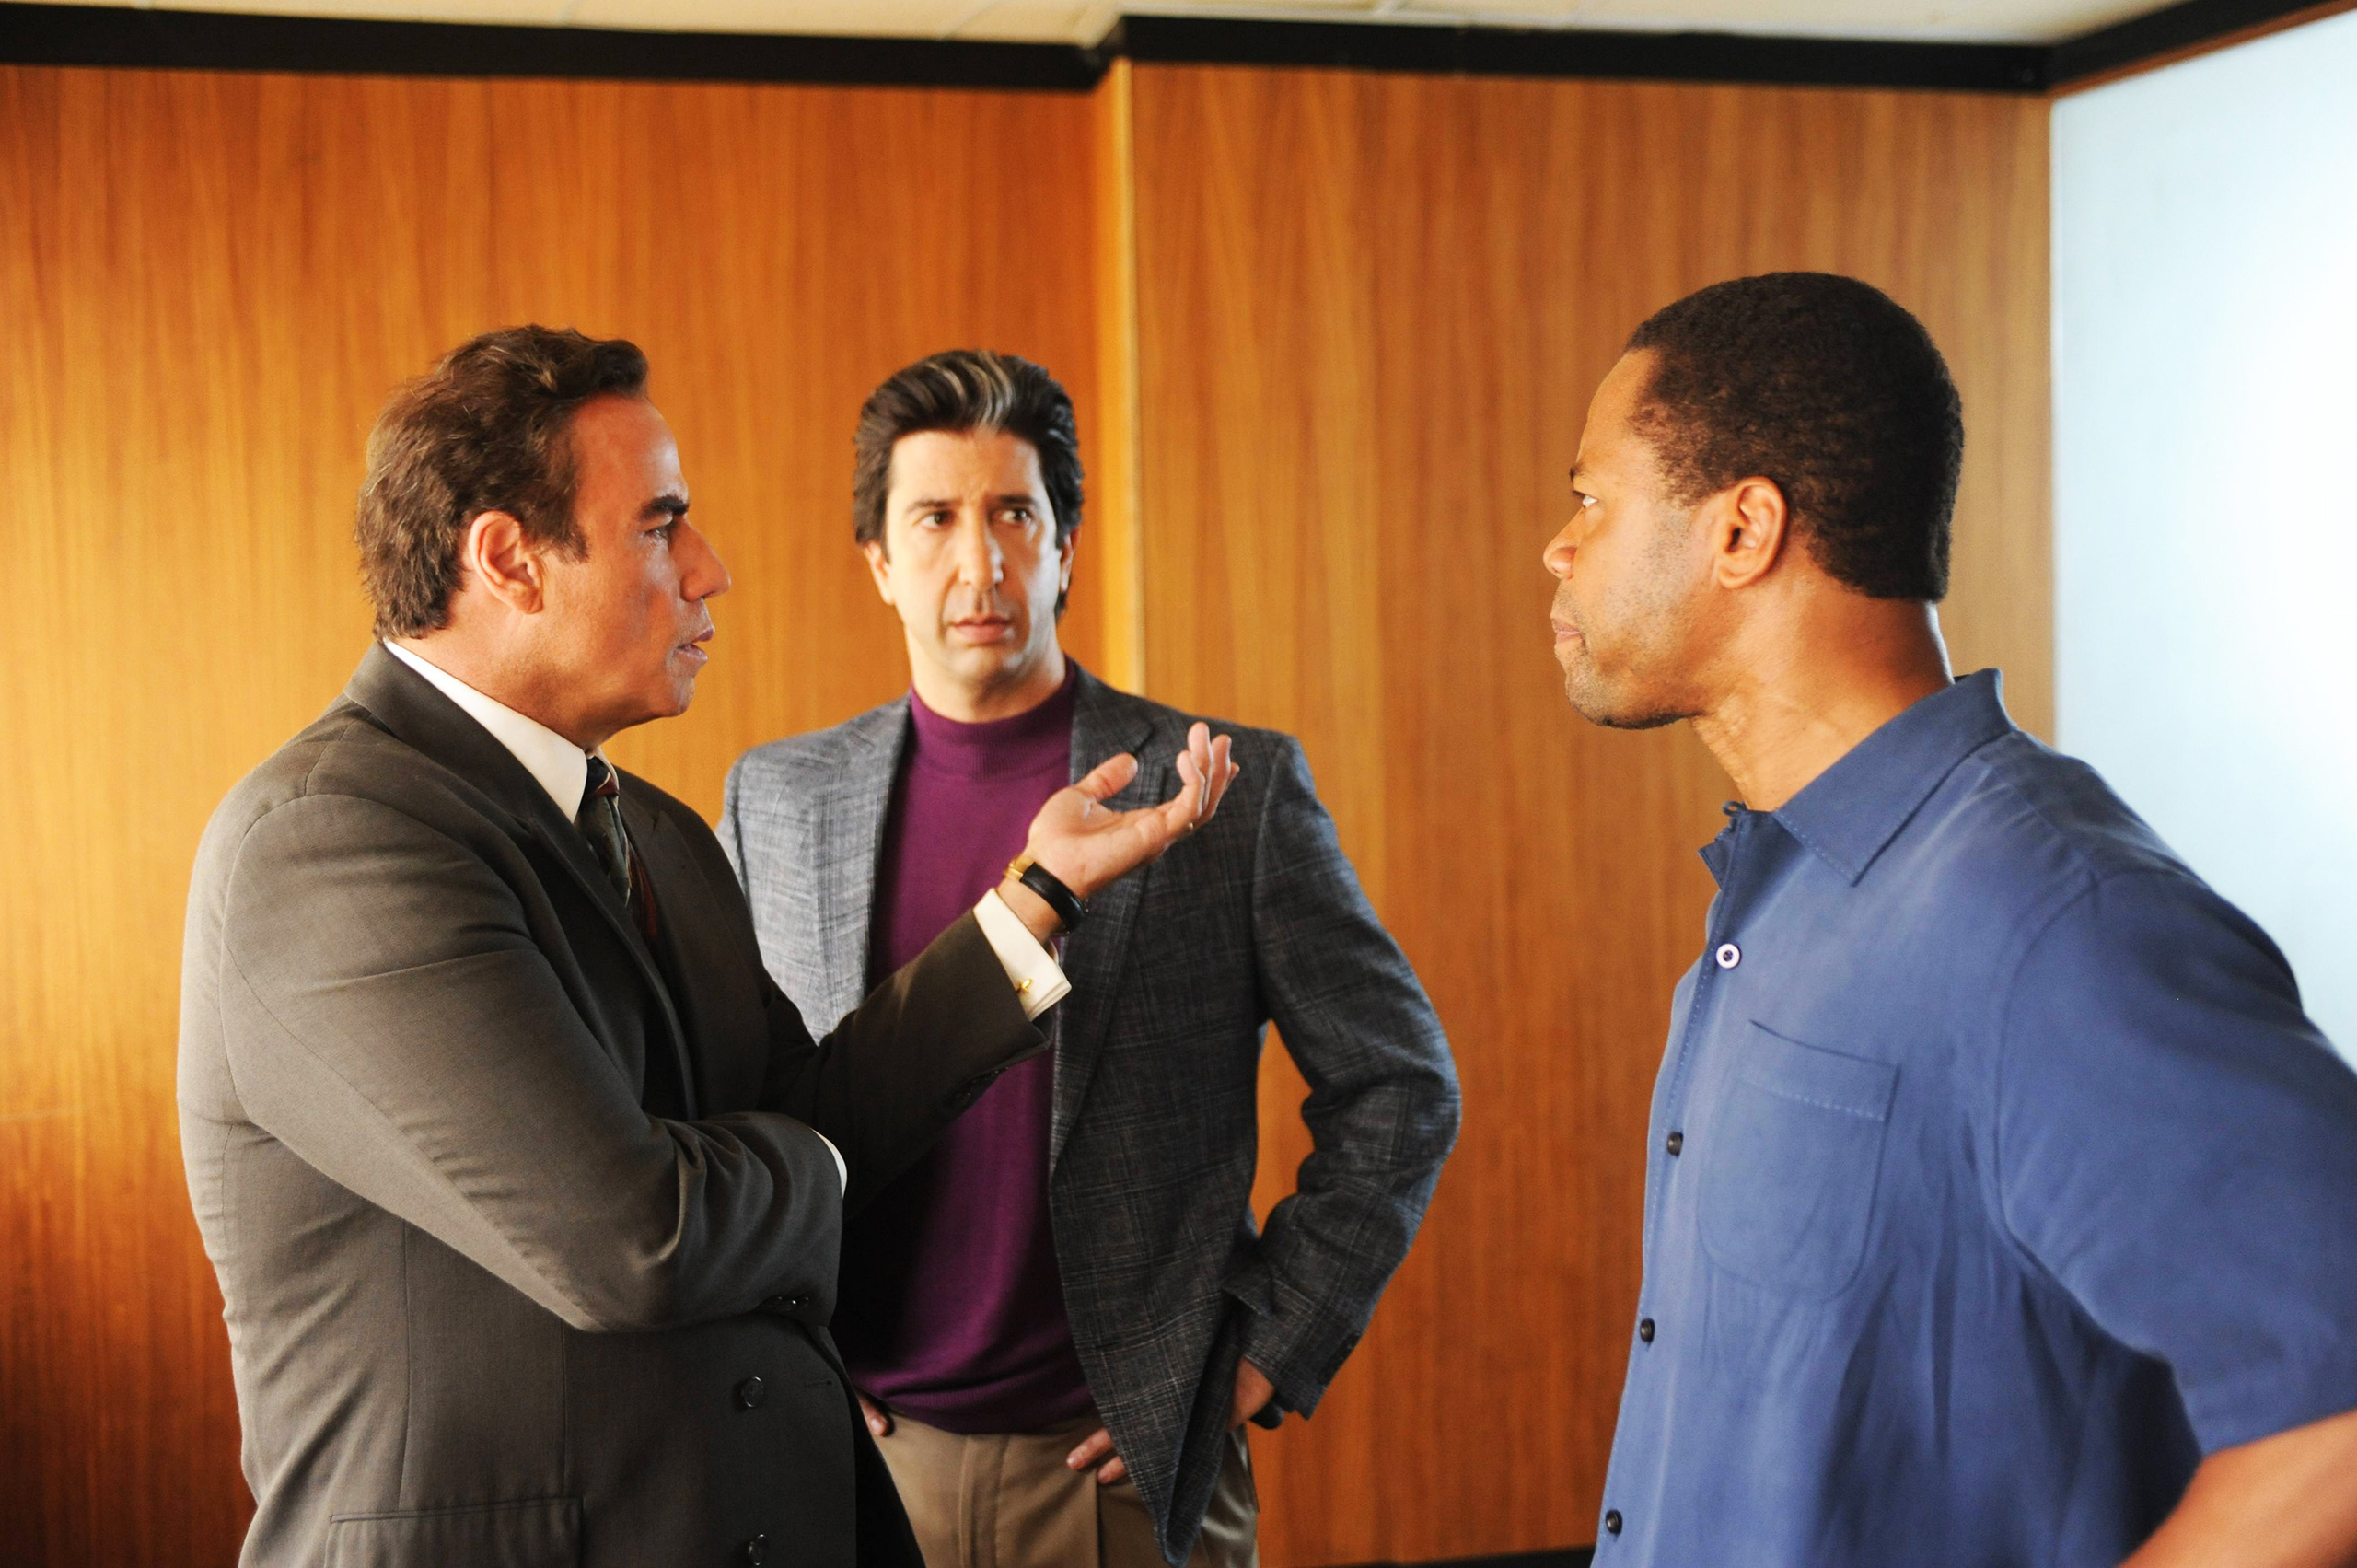 Simpson(Gooding, right) meets with trusted members of his legal  Dream Team (Travolta, left, and Schwimmer)